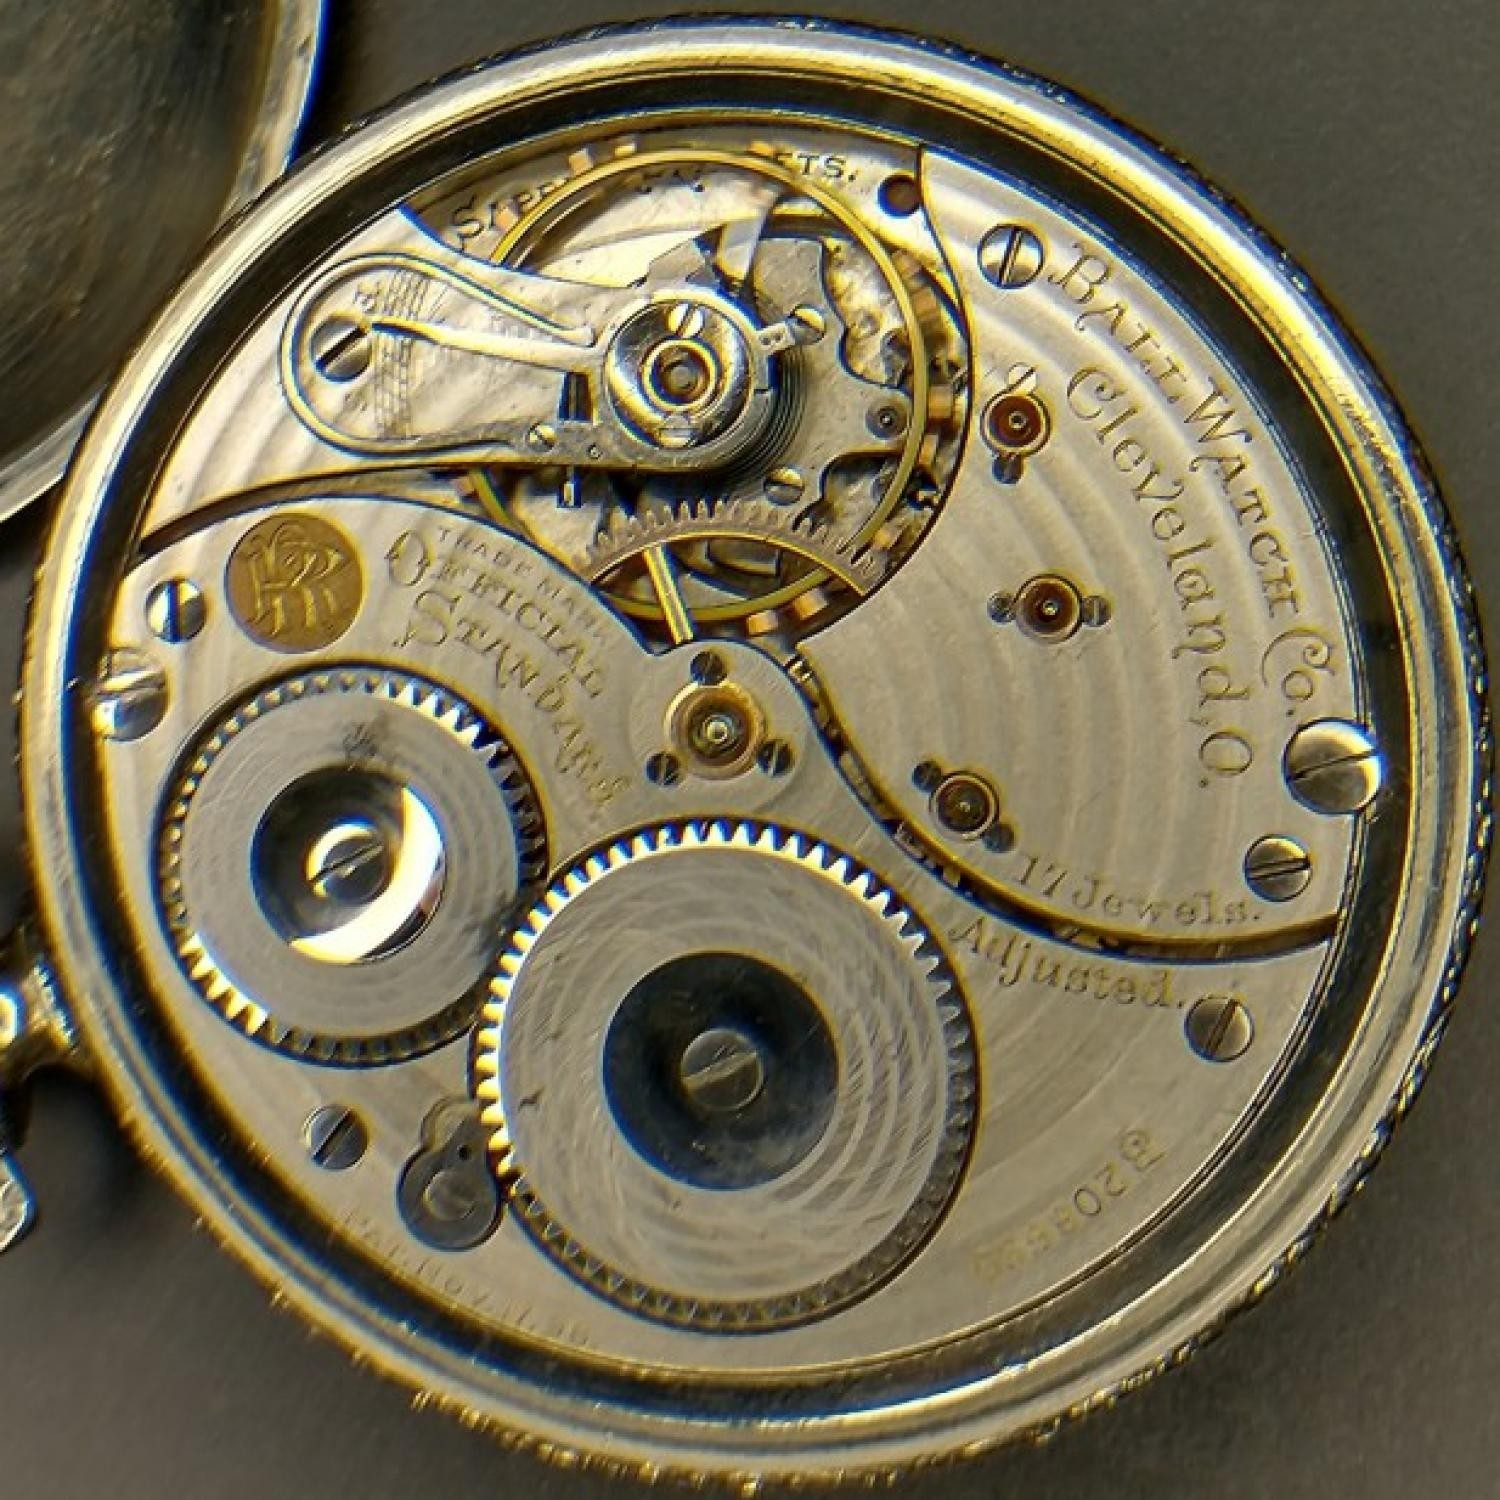 Image of Ball - Waltham Official Standard #B208690 Movement